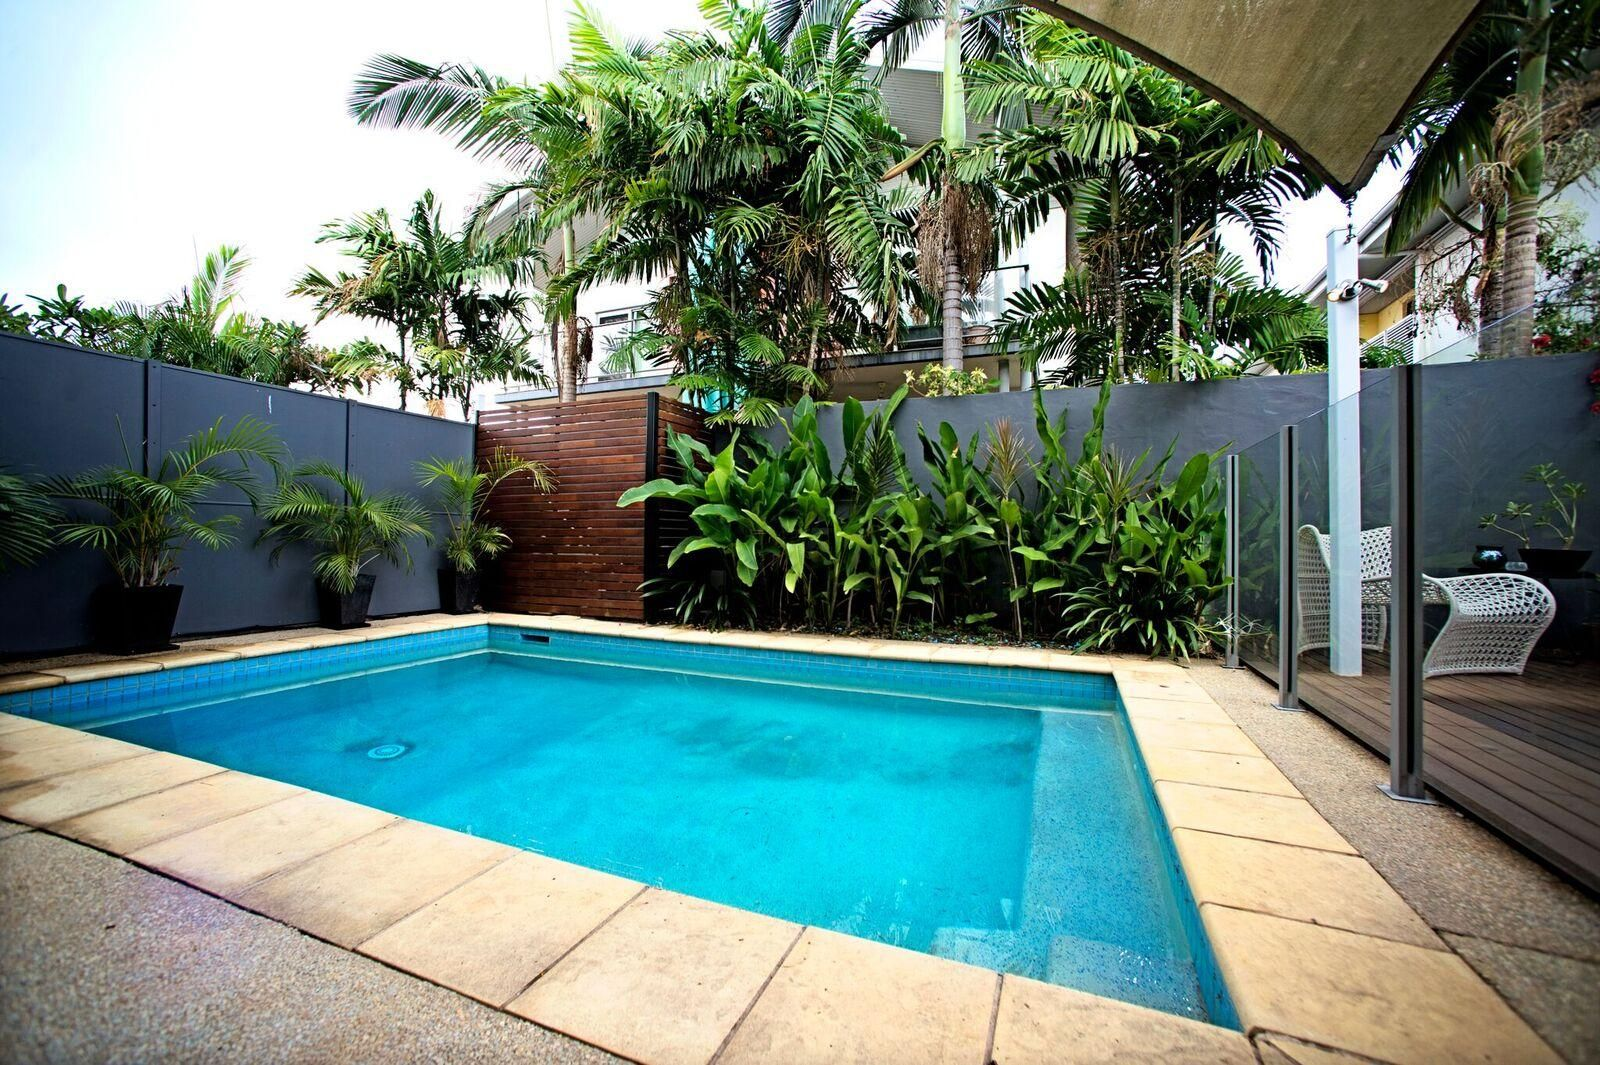 7/40 Gardens Hill Crescent, The Gardens NT 0820, Image 1